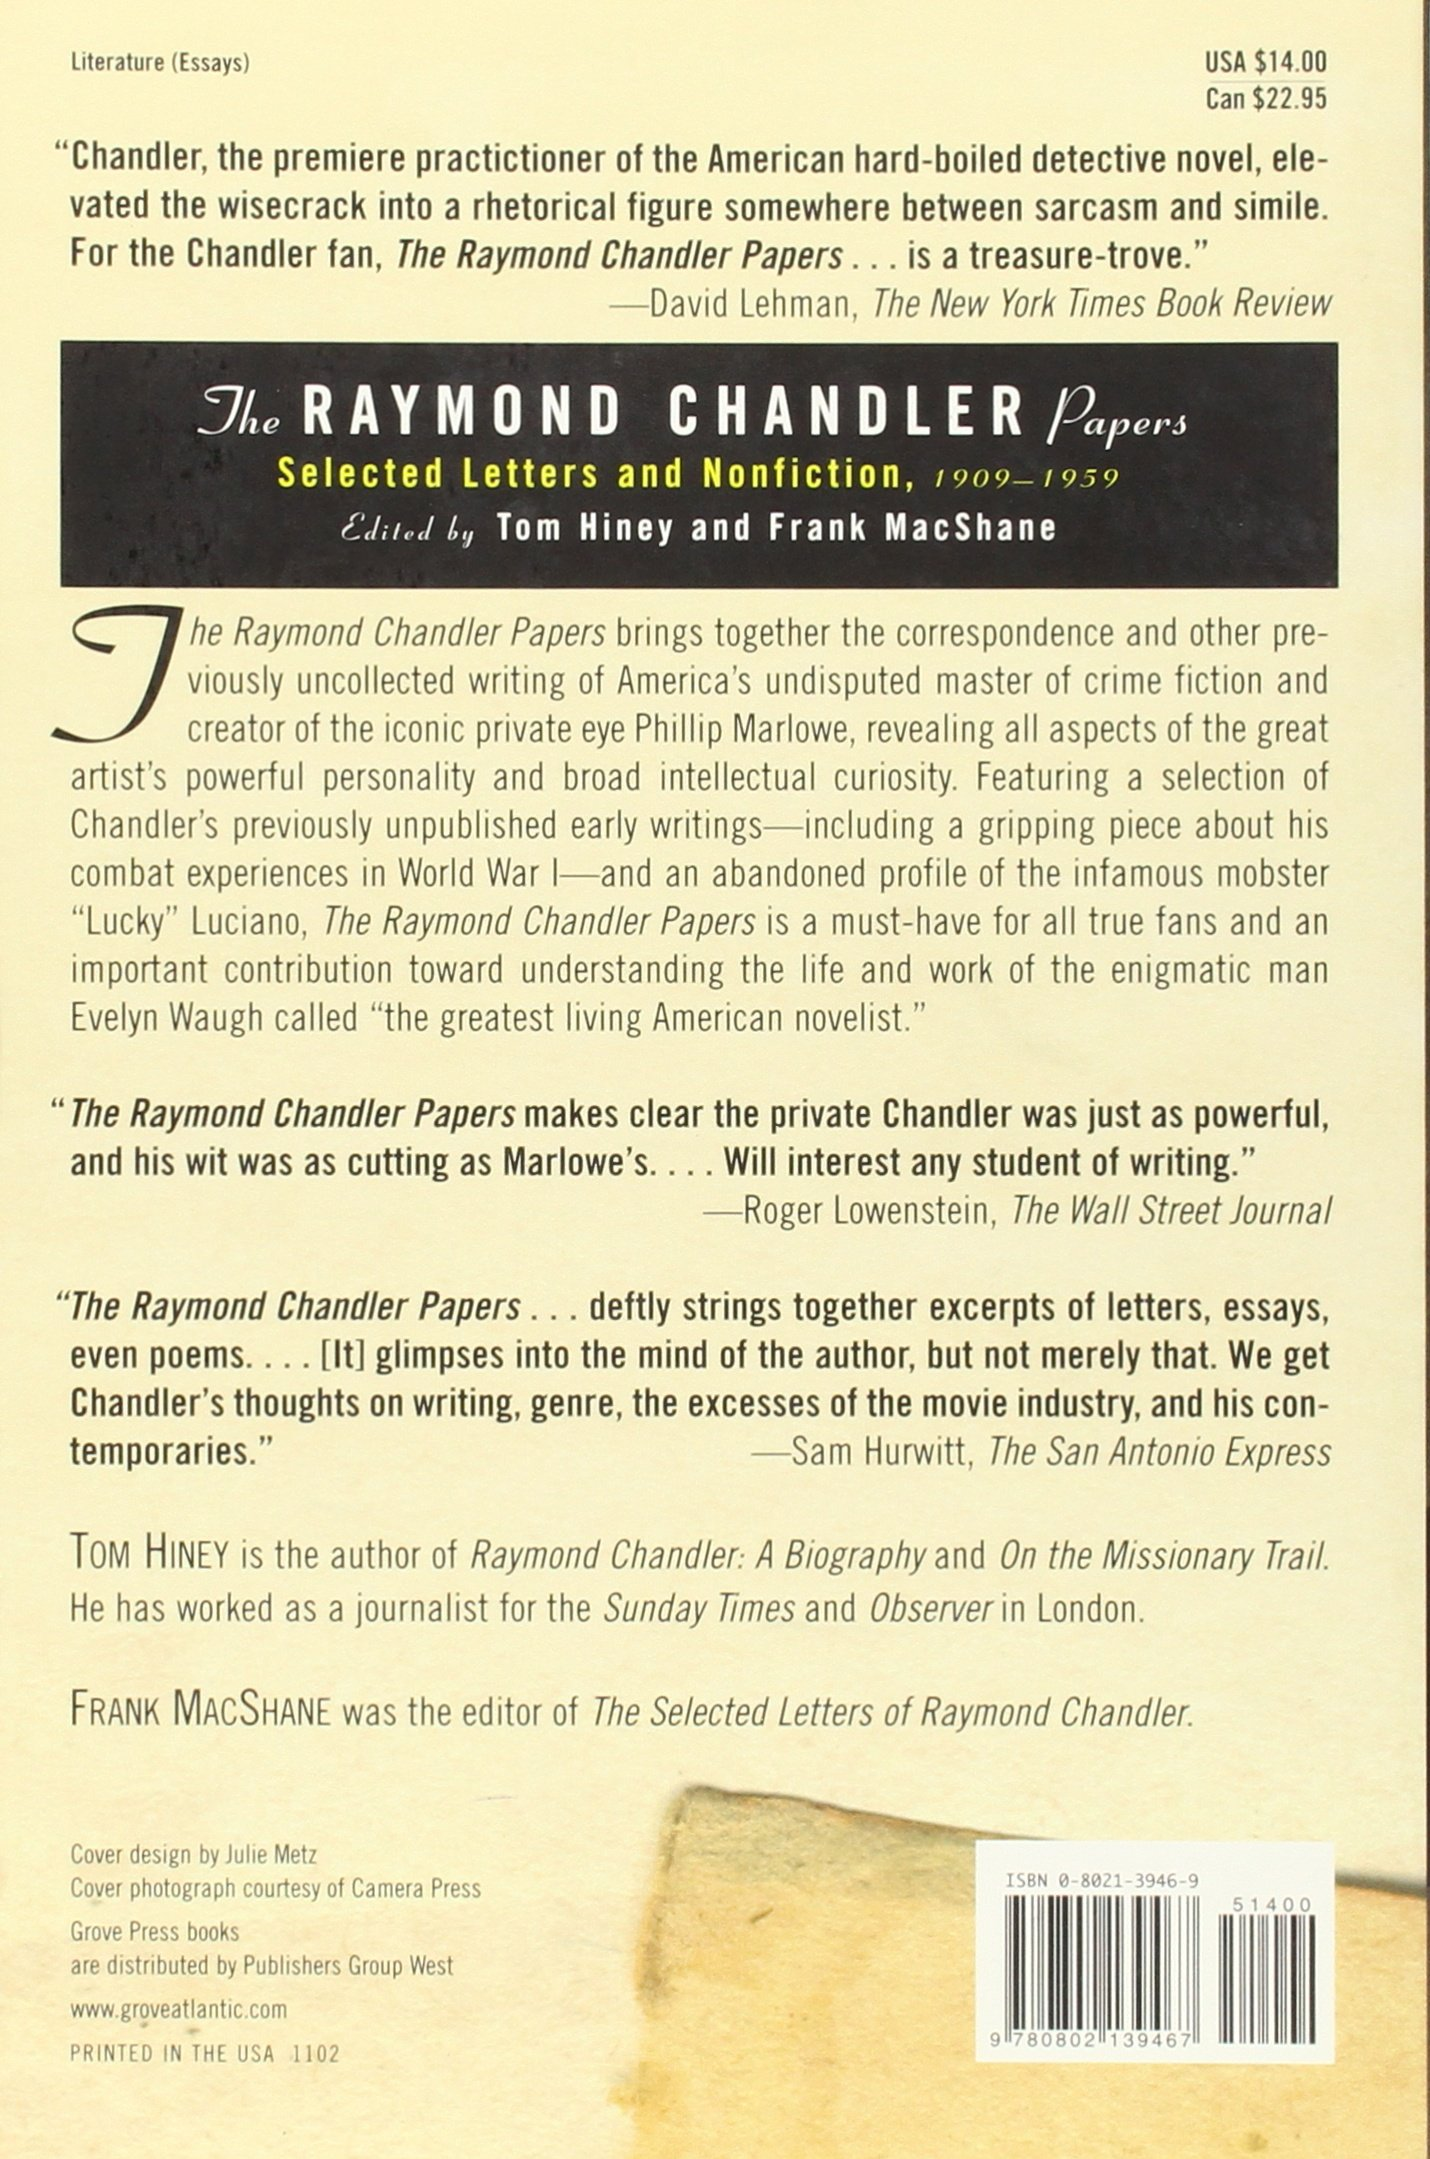 The Raymond Chandler Papers: Selected Letters and Nonfiction 1909 ...